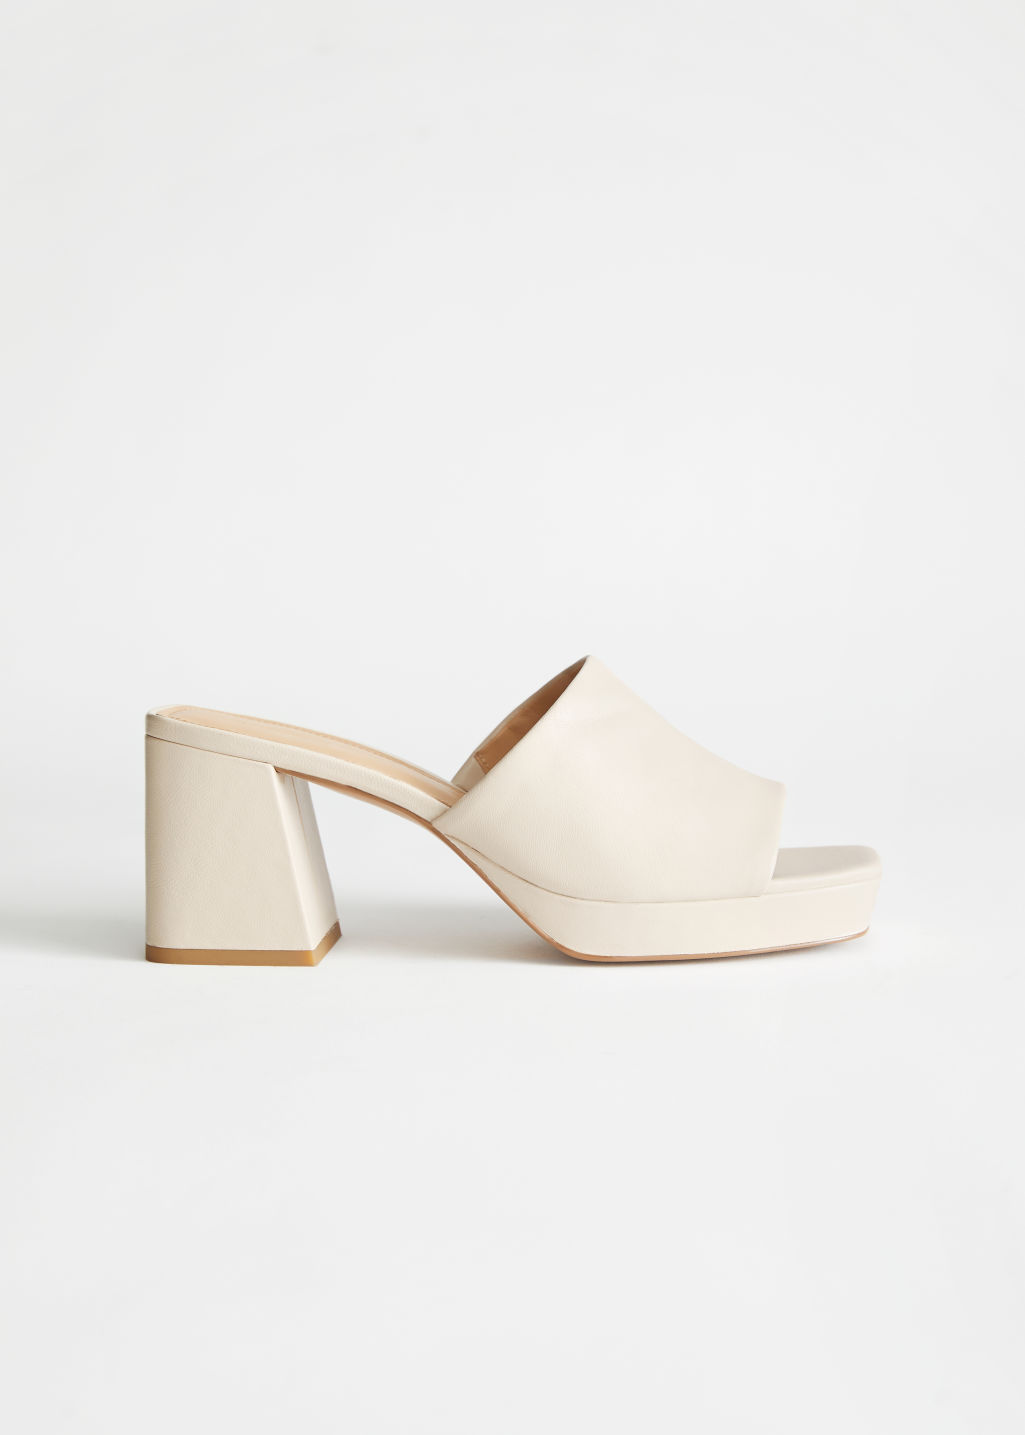 StillLife Side Image of Stories Leather Heeled Platform Mules in White